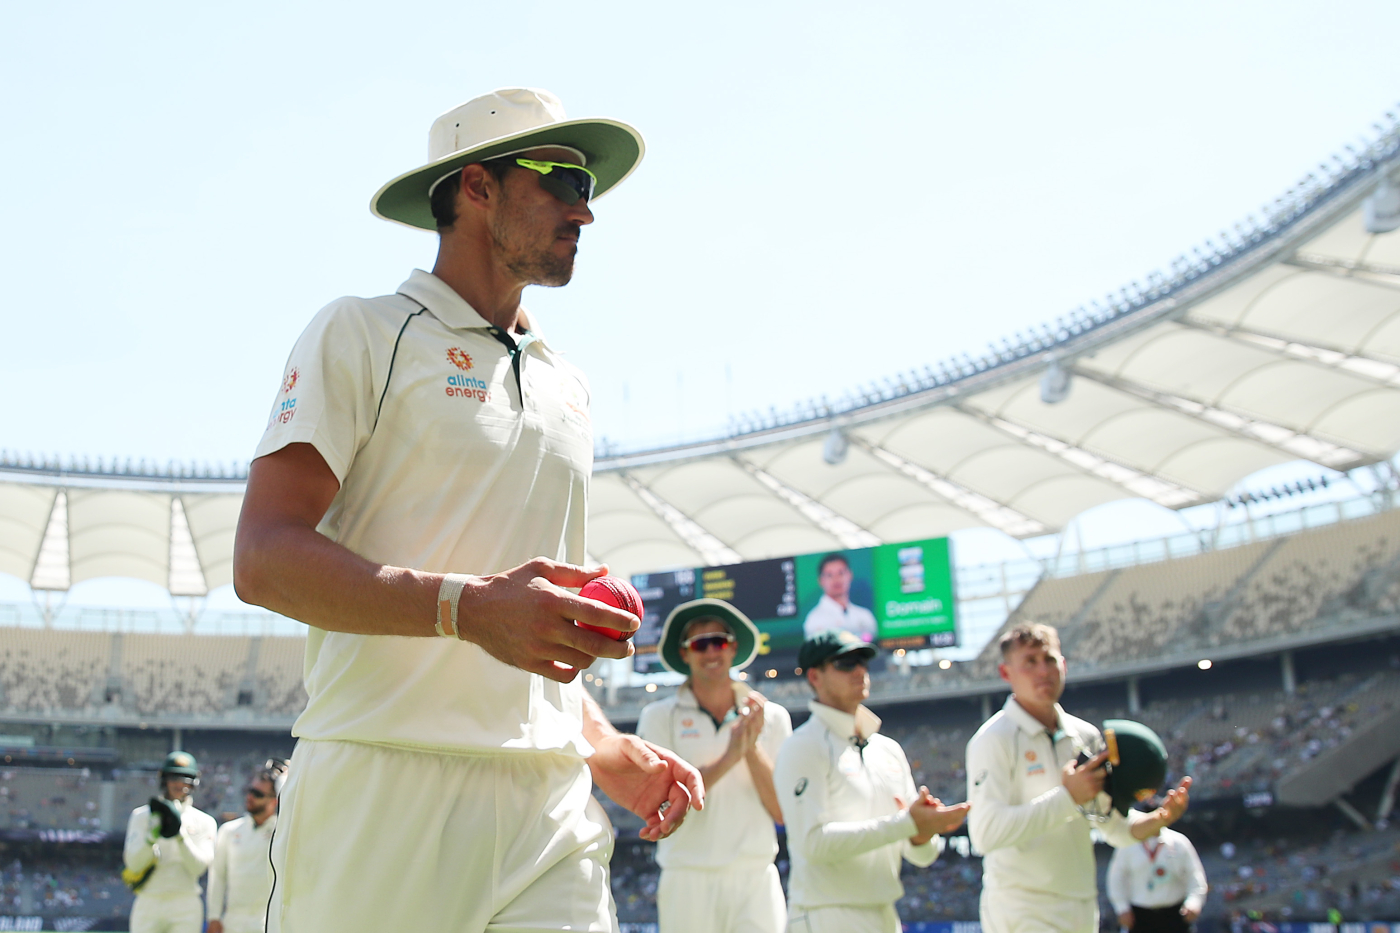 Lethal weapon: since the start of 2019, Starc has taken 46 wickets in 17 Test innings at a strike rate of 37.4 and an average of 20.69